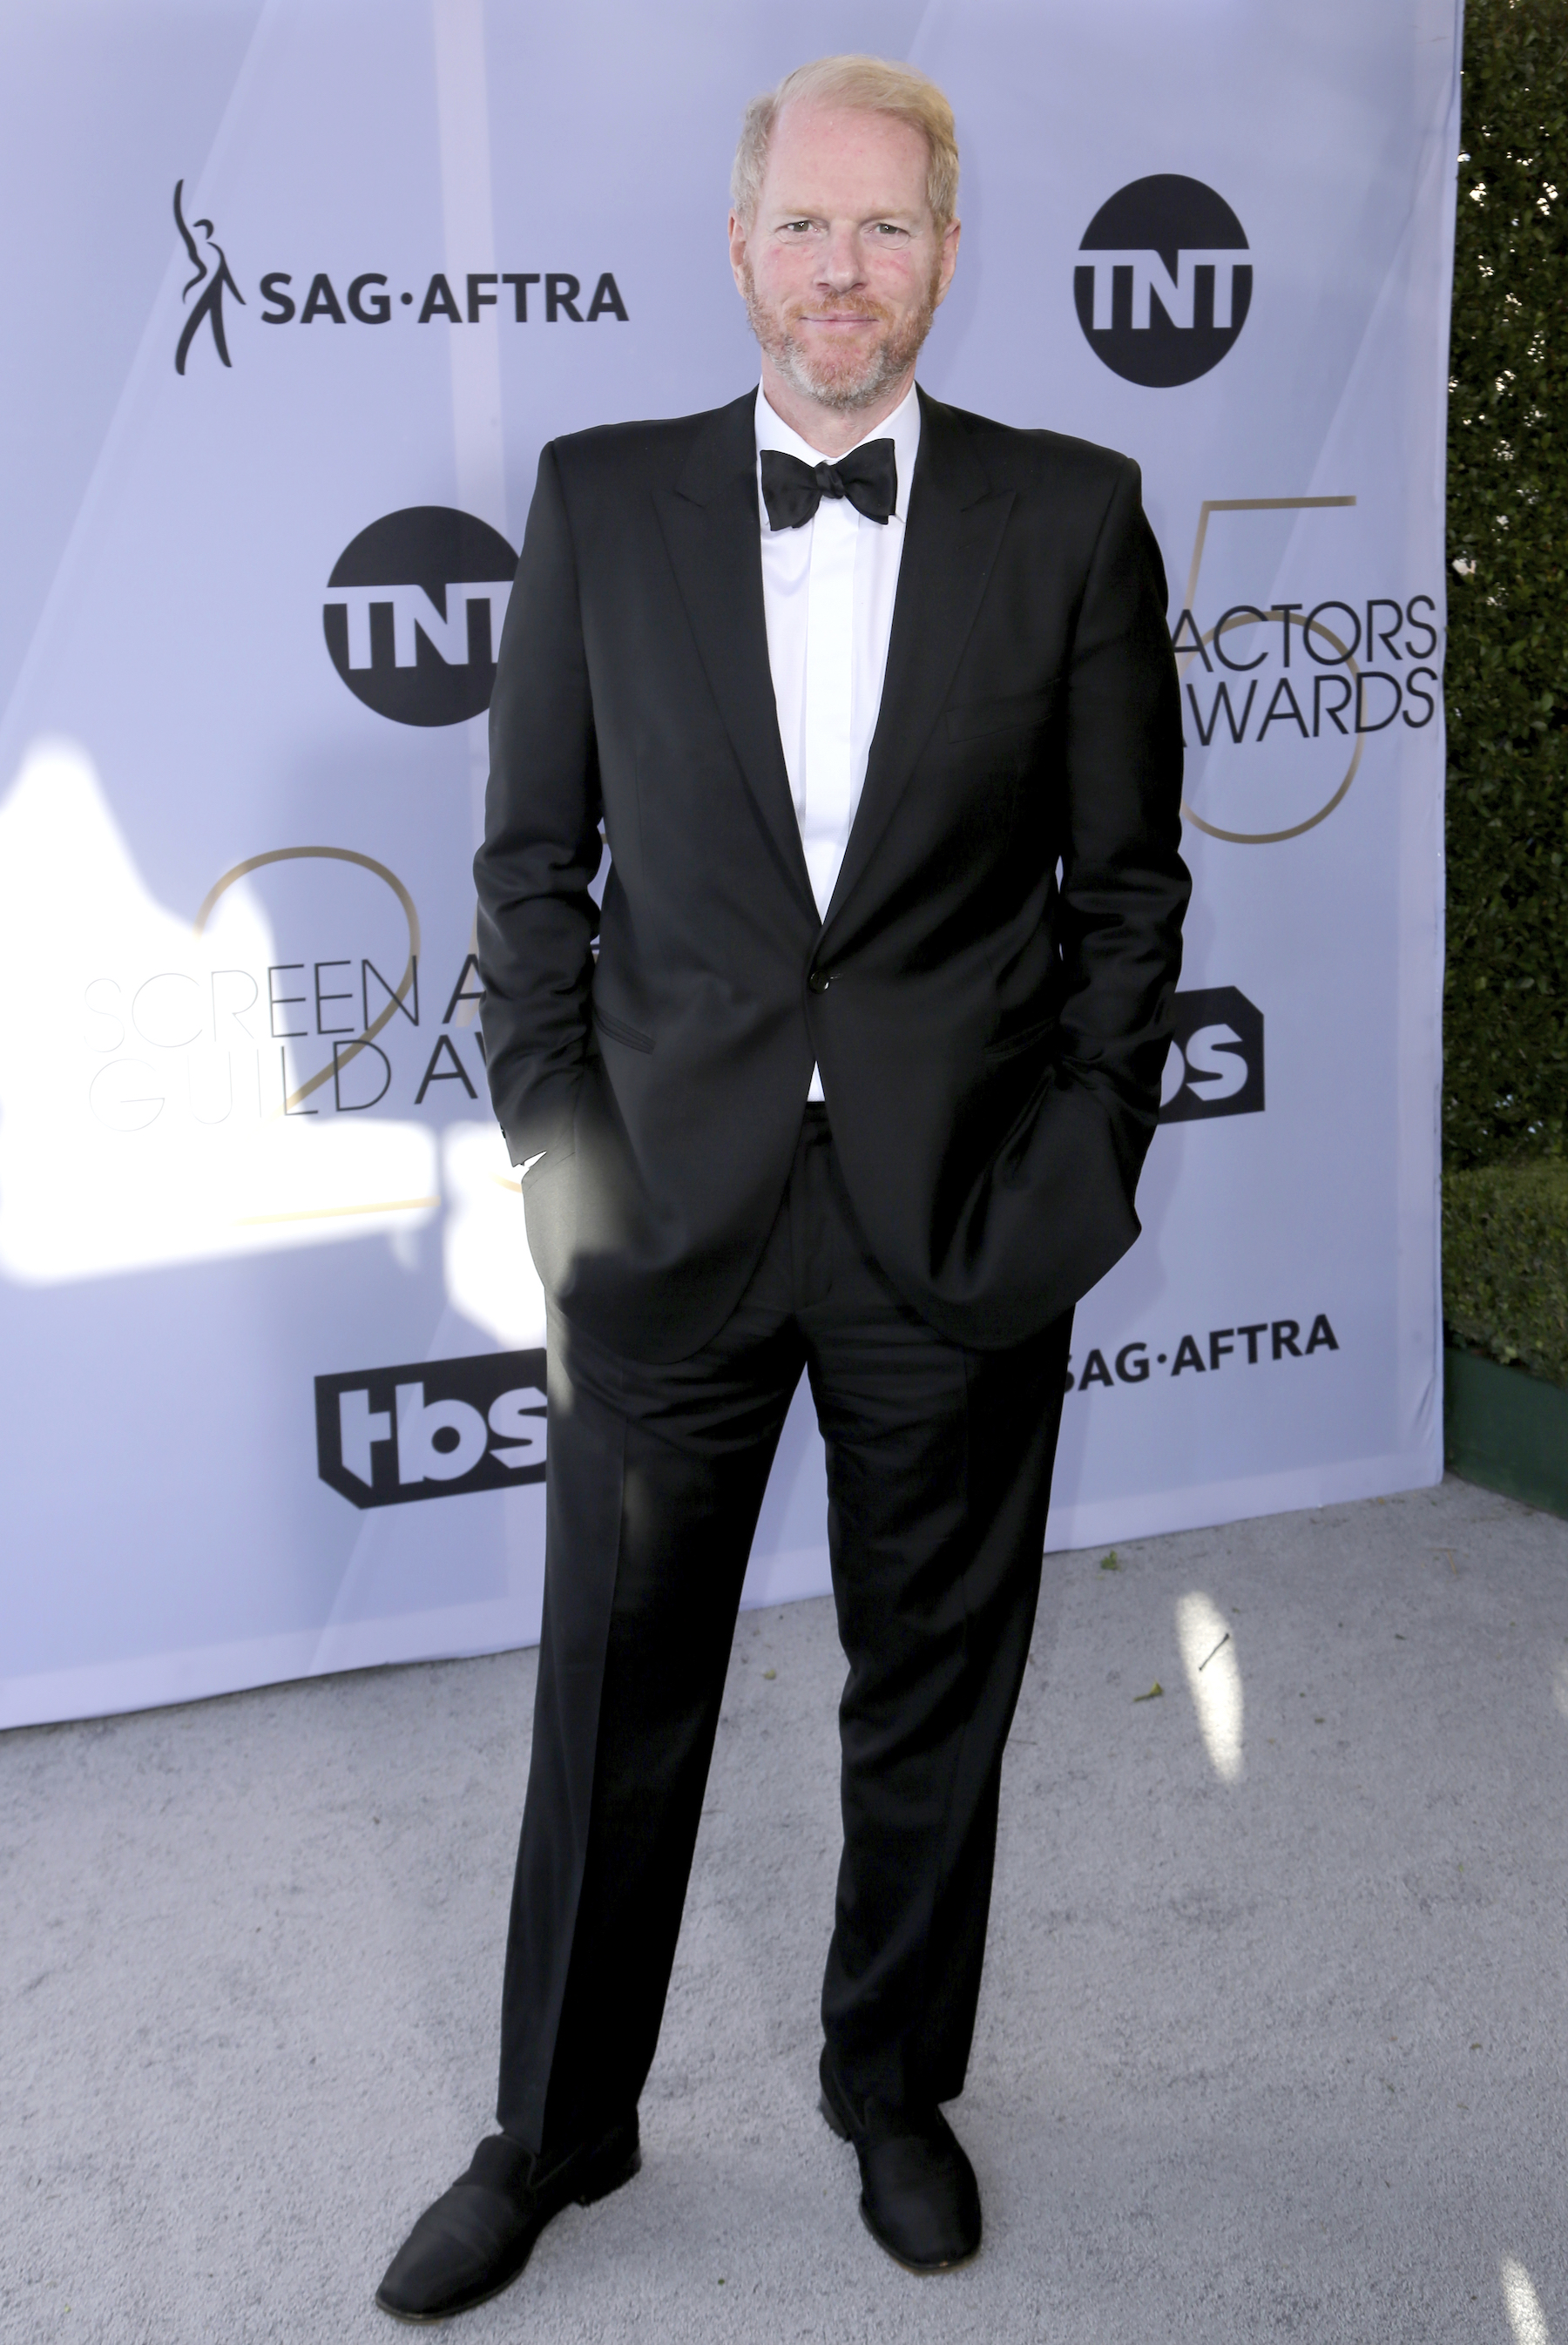 "<div class=""meta image-caption""><div class=""origin-logo origin-image ap""><span>AP</span></div><span class=""caption-text"">Noah Emmerich arrives at the 25th annual Screen Actors Guild Awards at the Shrine Auditorium & Expo Hall on Sunday, Jan. 27, 2019, in Los Angeles. (Willy Sanjuan/Invision/AP)</span></div>"